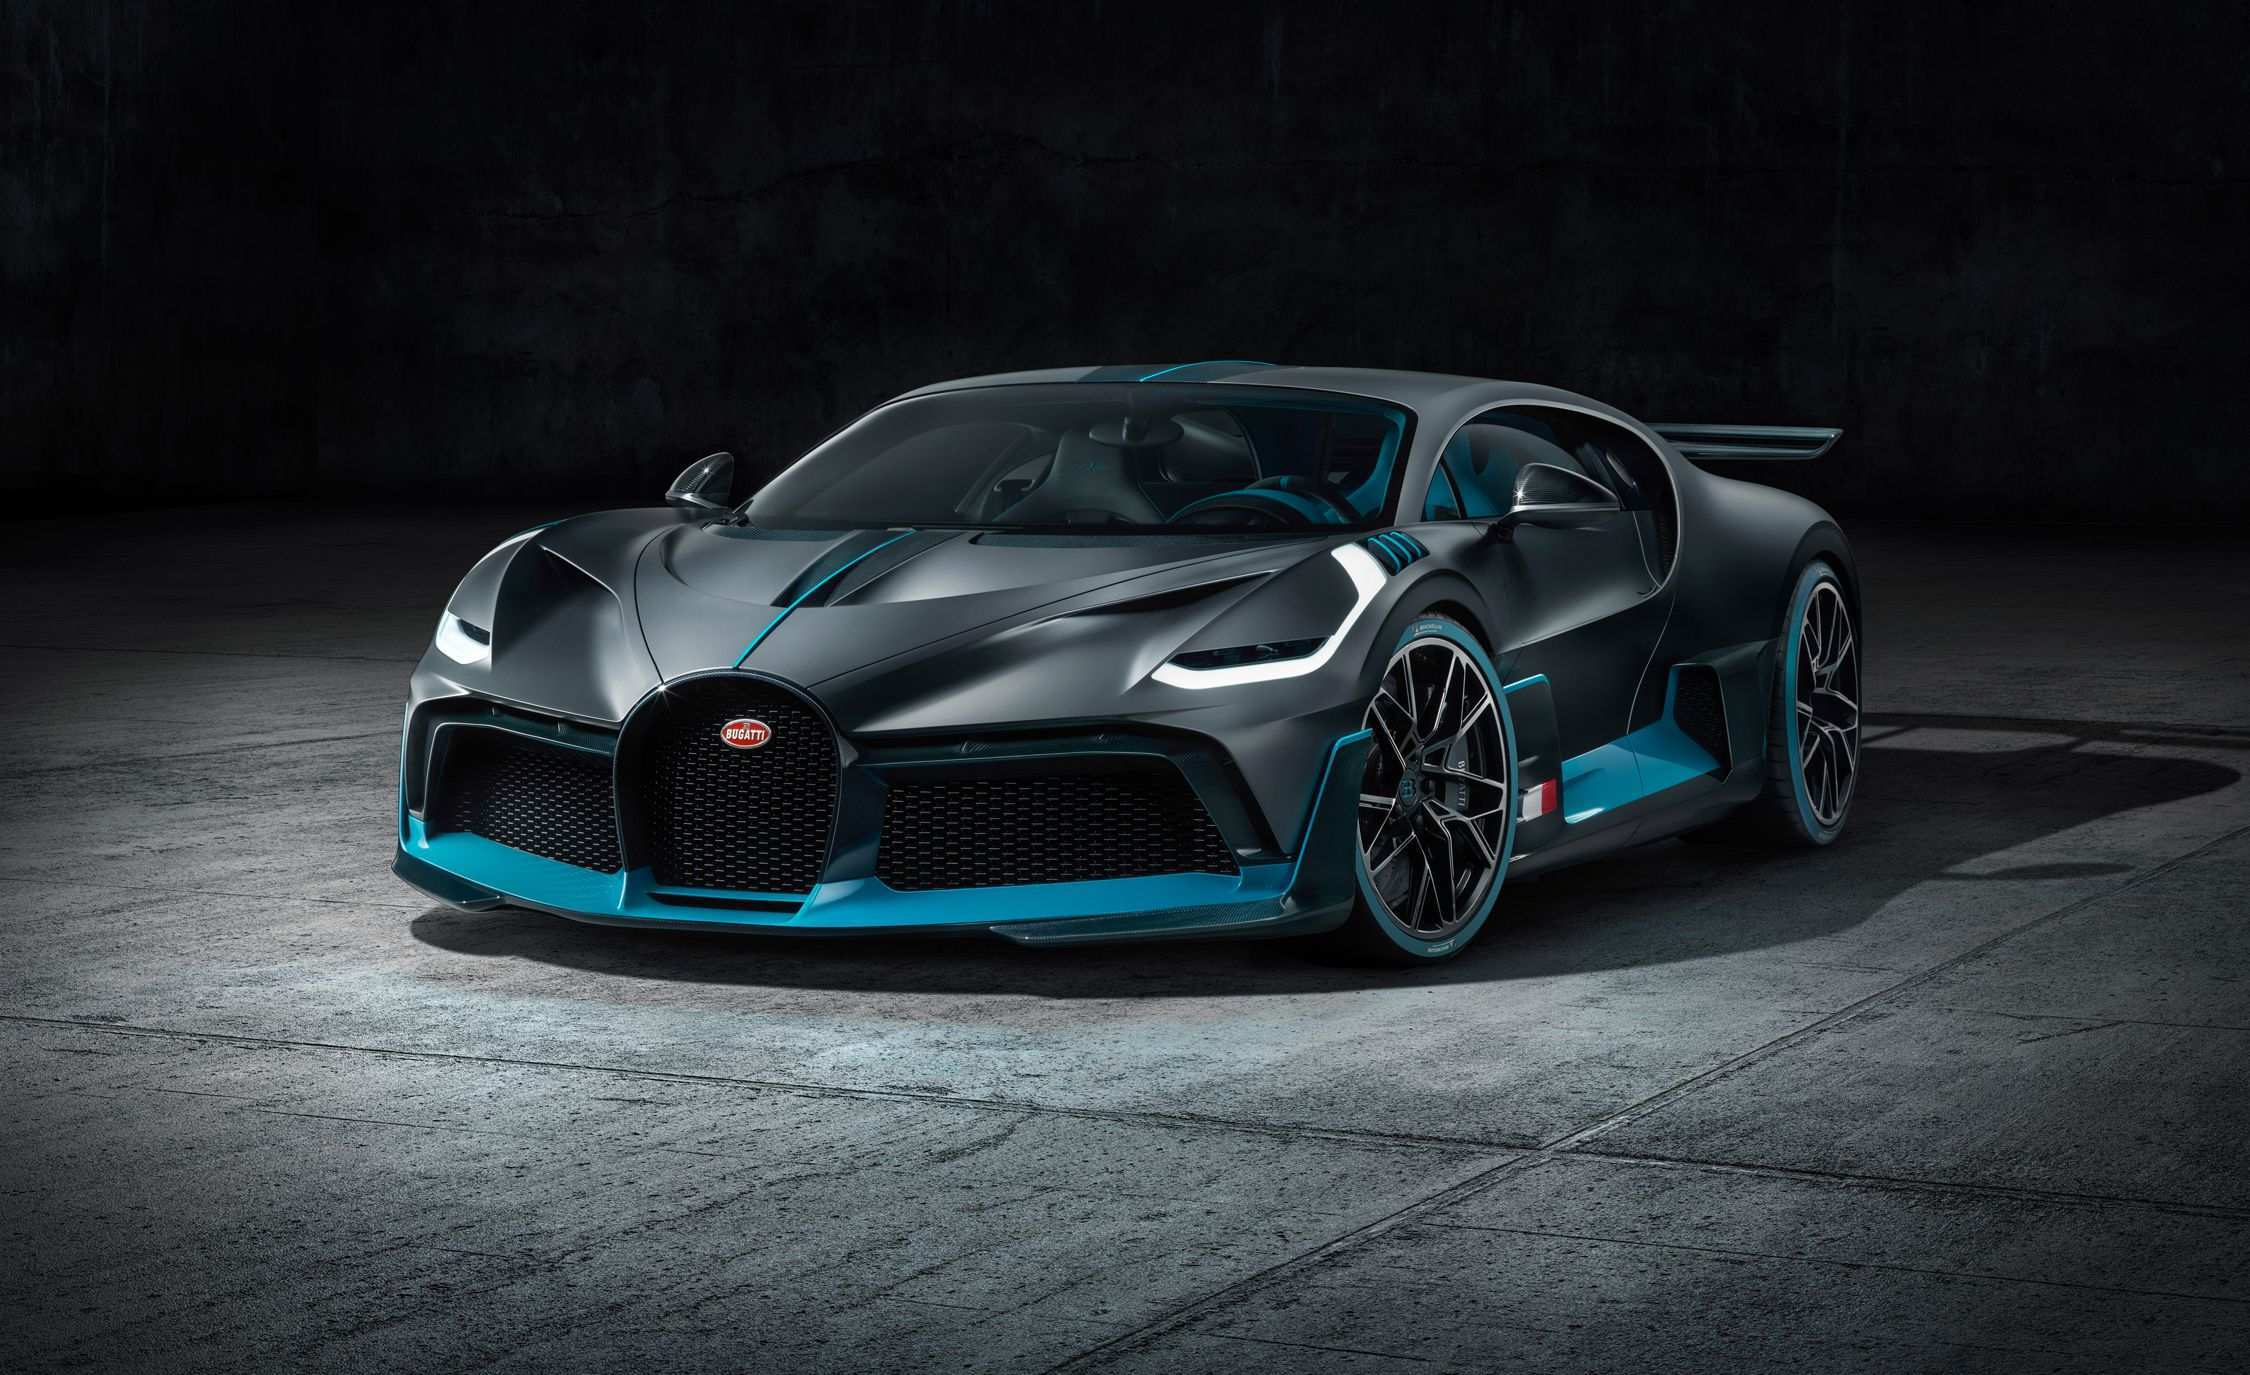 16 Gallery of 2020 Bugatti Rumors with 2020 Bugatti